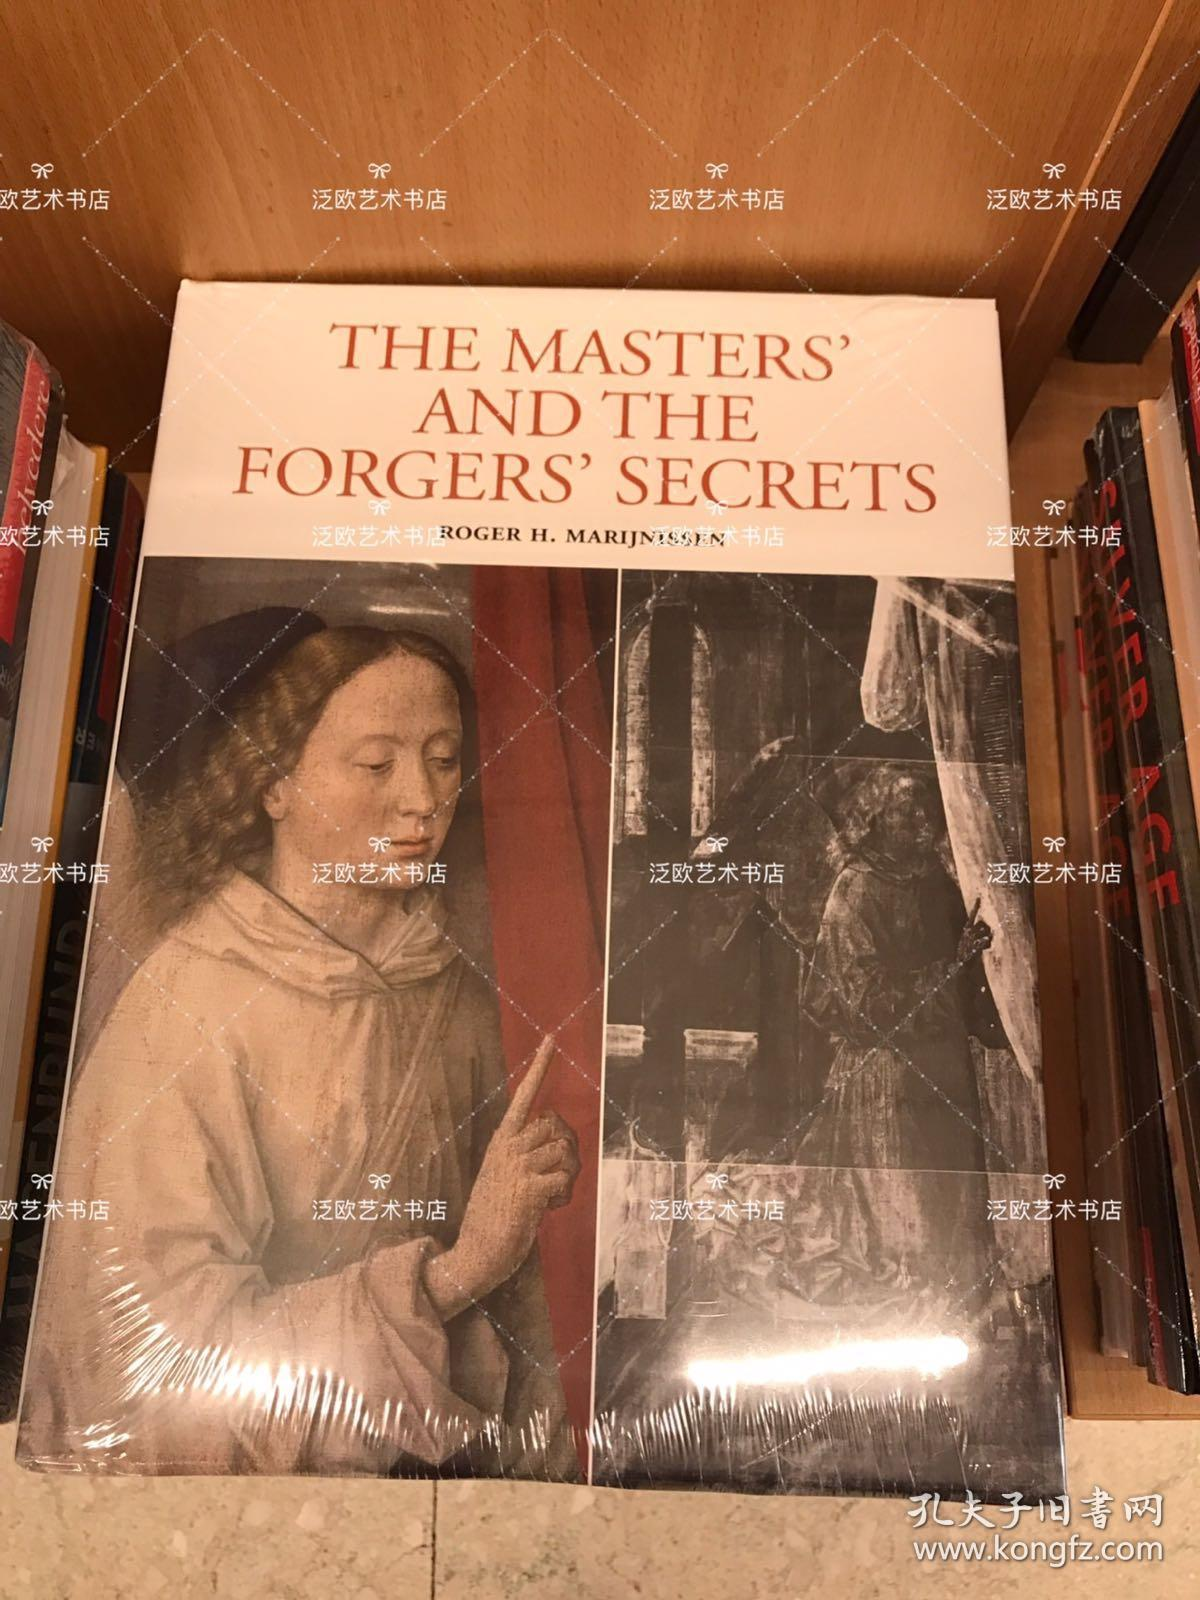 The Masters and the Forgers'Secrets x-ray Authentication of Paintings 大师的秘密 绘画通过远红外线鉴证大师作品